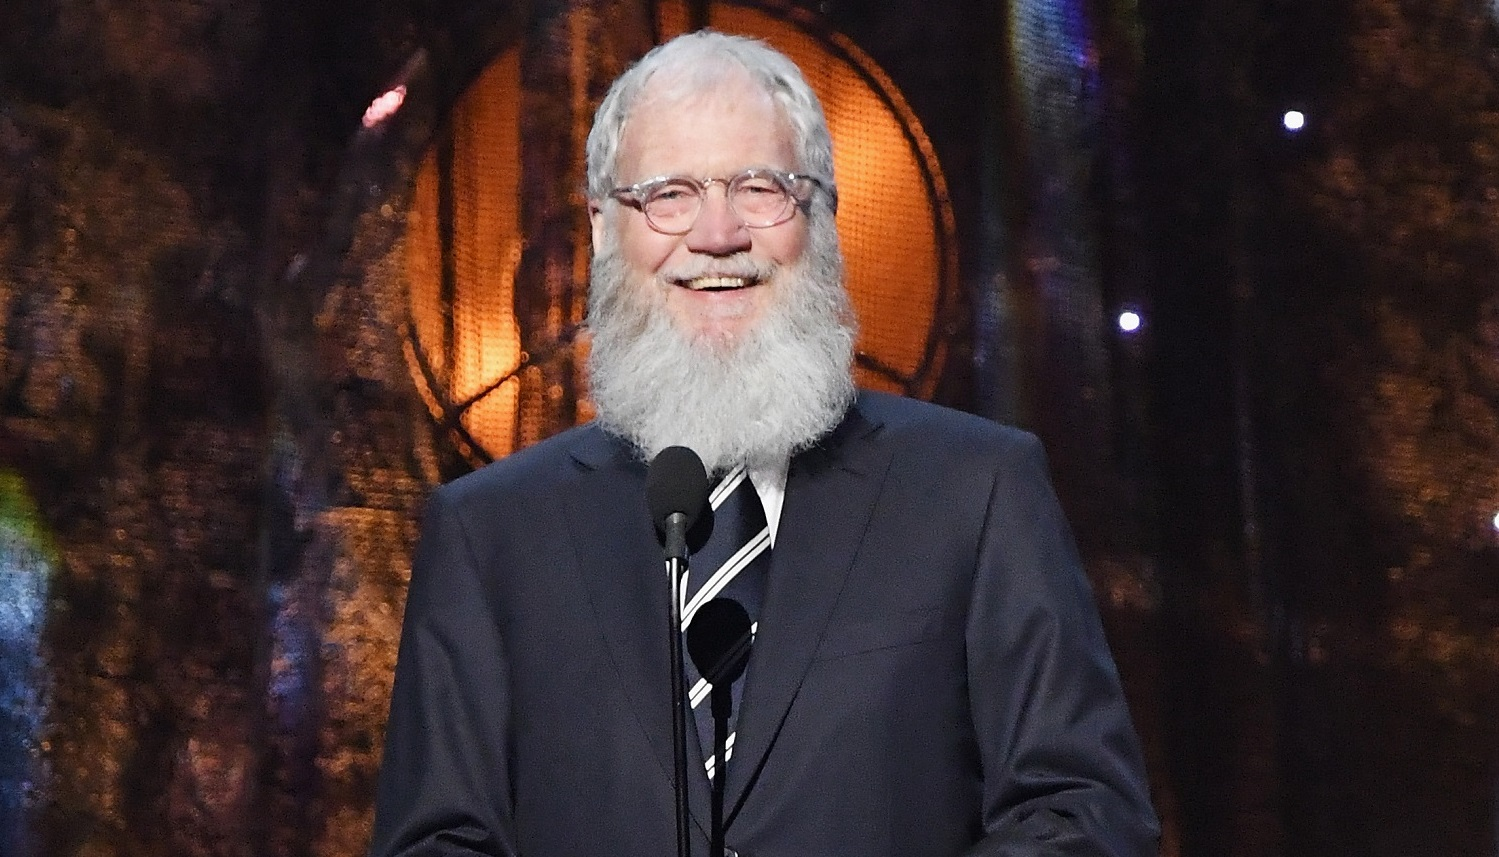 Presenter David Letterman speaks onstage at the 32nd Annual Rock & Roll Hall Of Fame Induction Ceremony this month in New York City. (Photo by Mike Coppola/Getty Images)